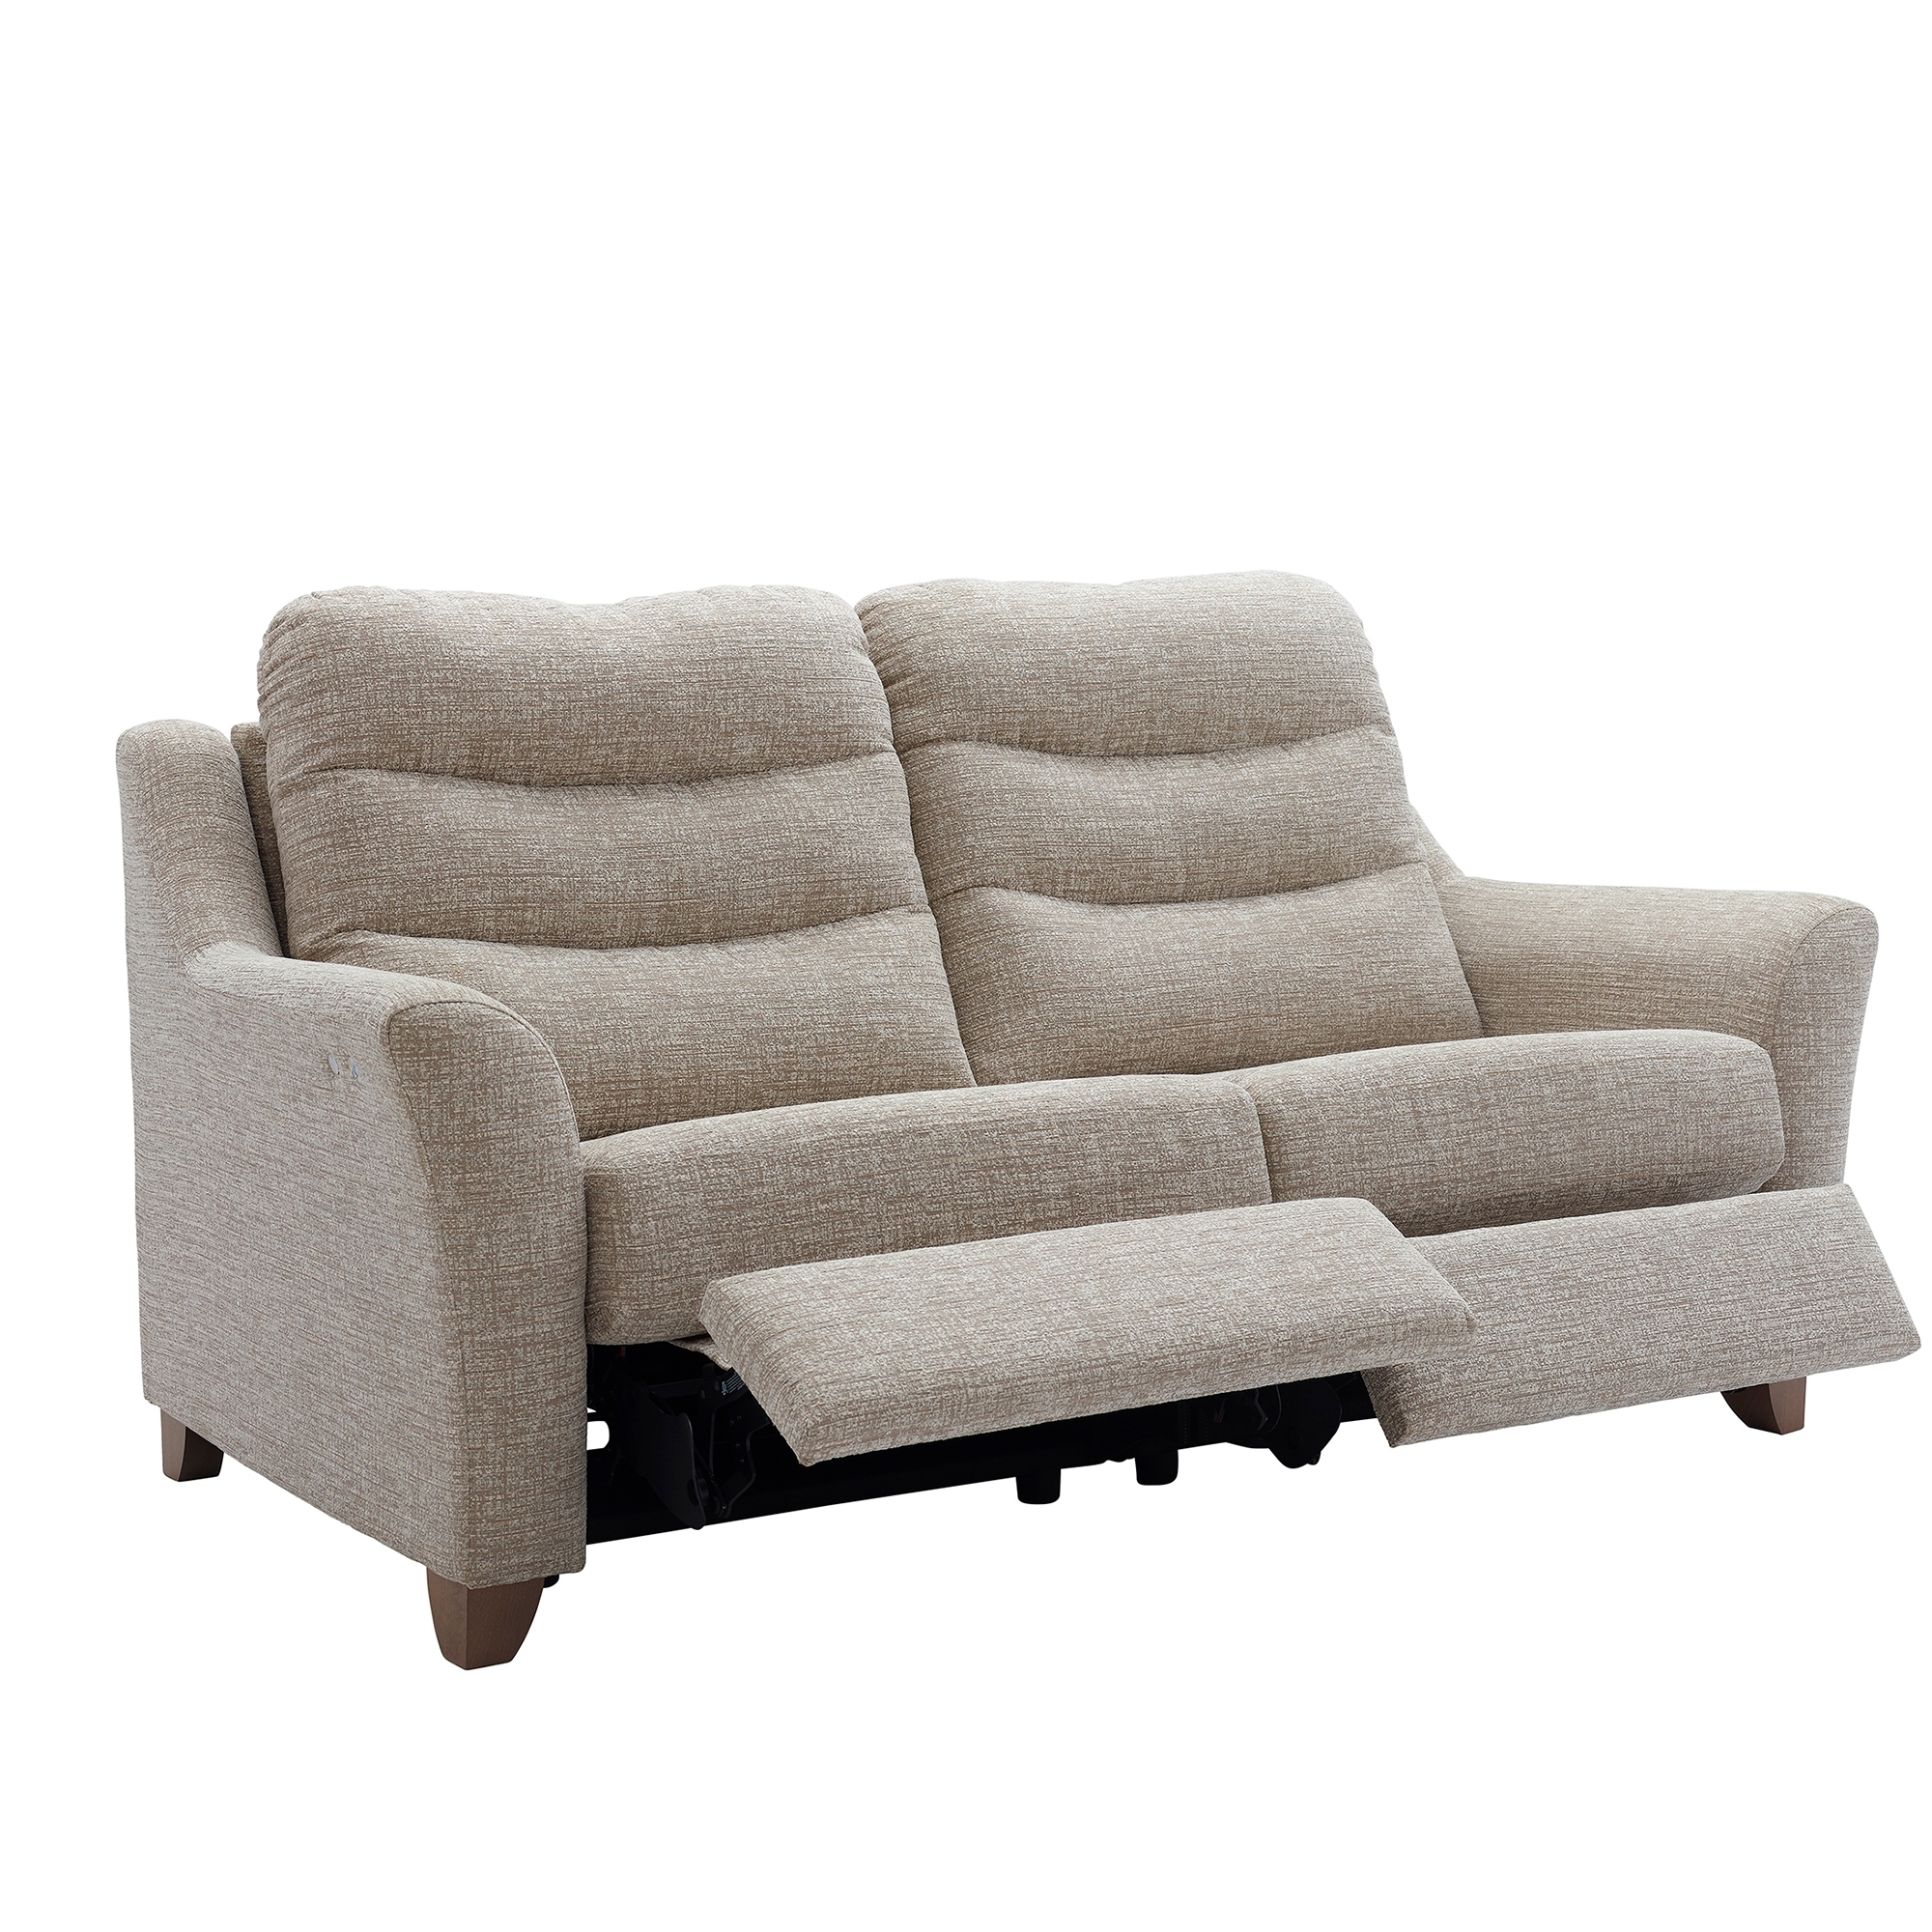 G plan gallery collection tate 3 seater power recliner sofa g plan upholstery cookes furniture - Dfs furniture head office ...